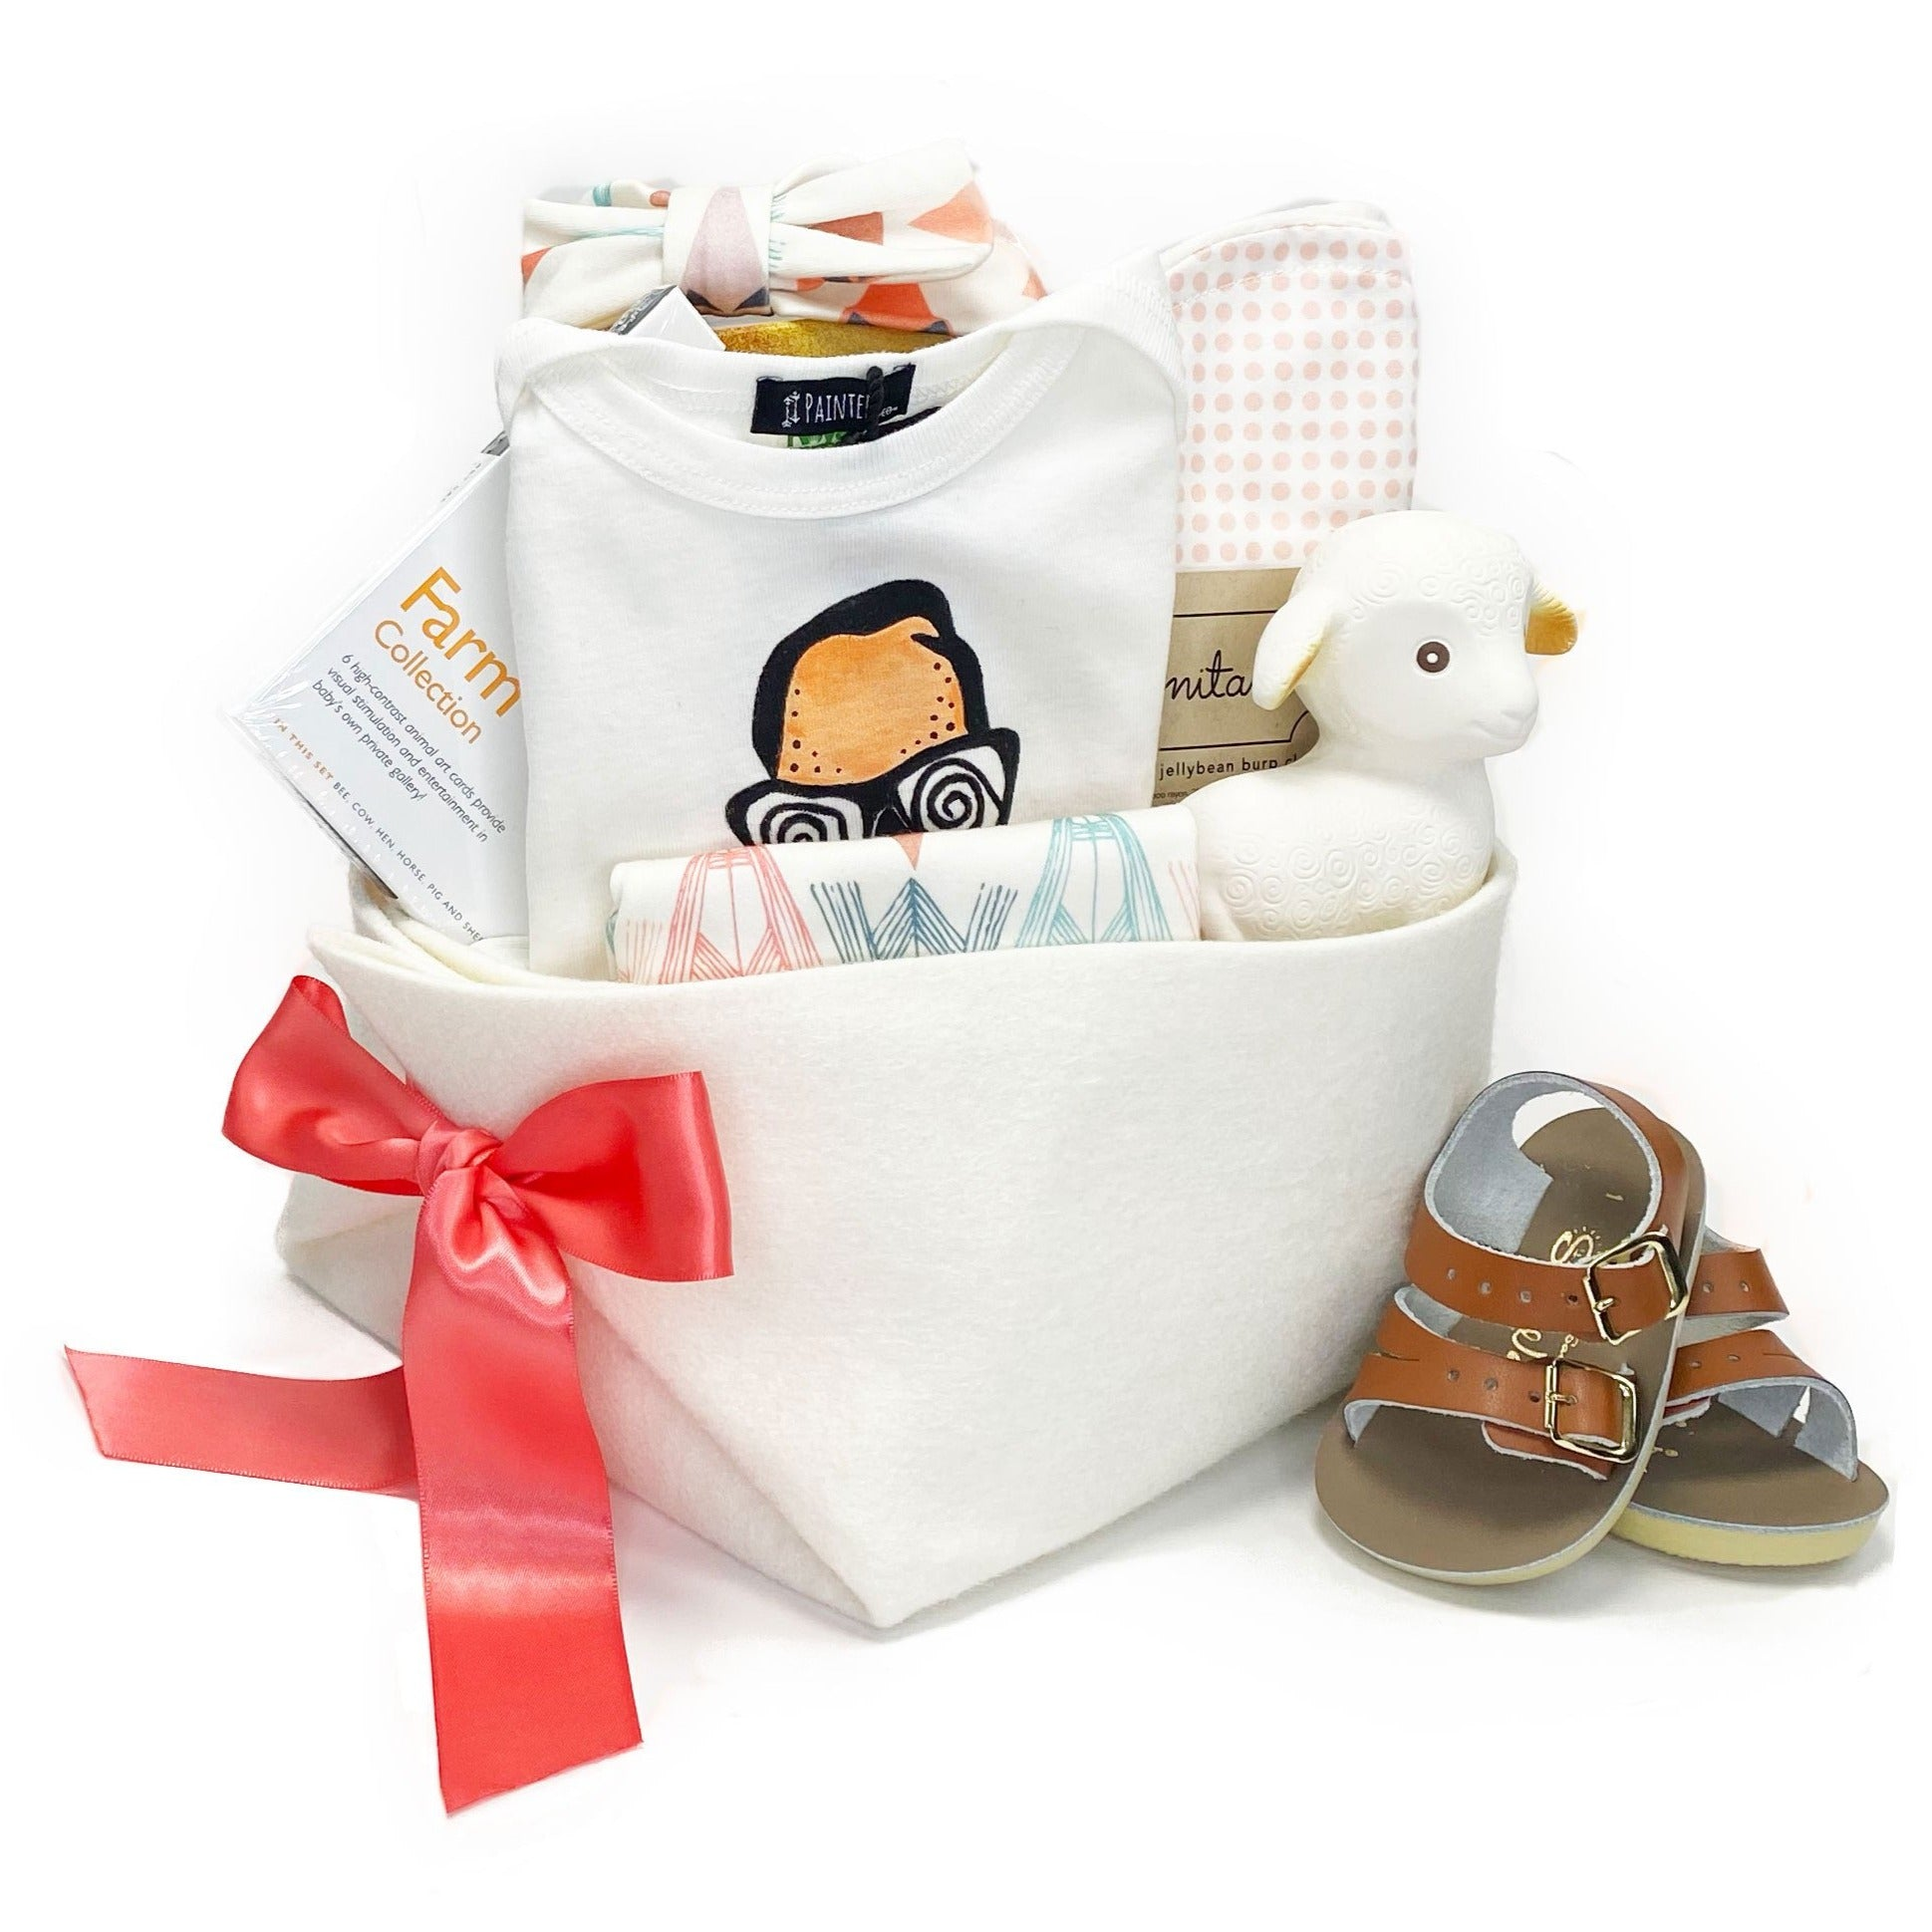 Baby Girl Gift at Bonjour Baby Baskets, perfect Corporate Baby Gift